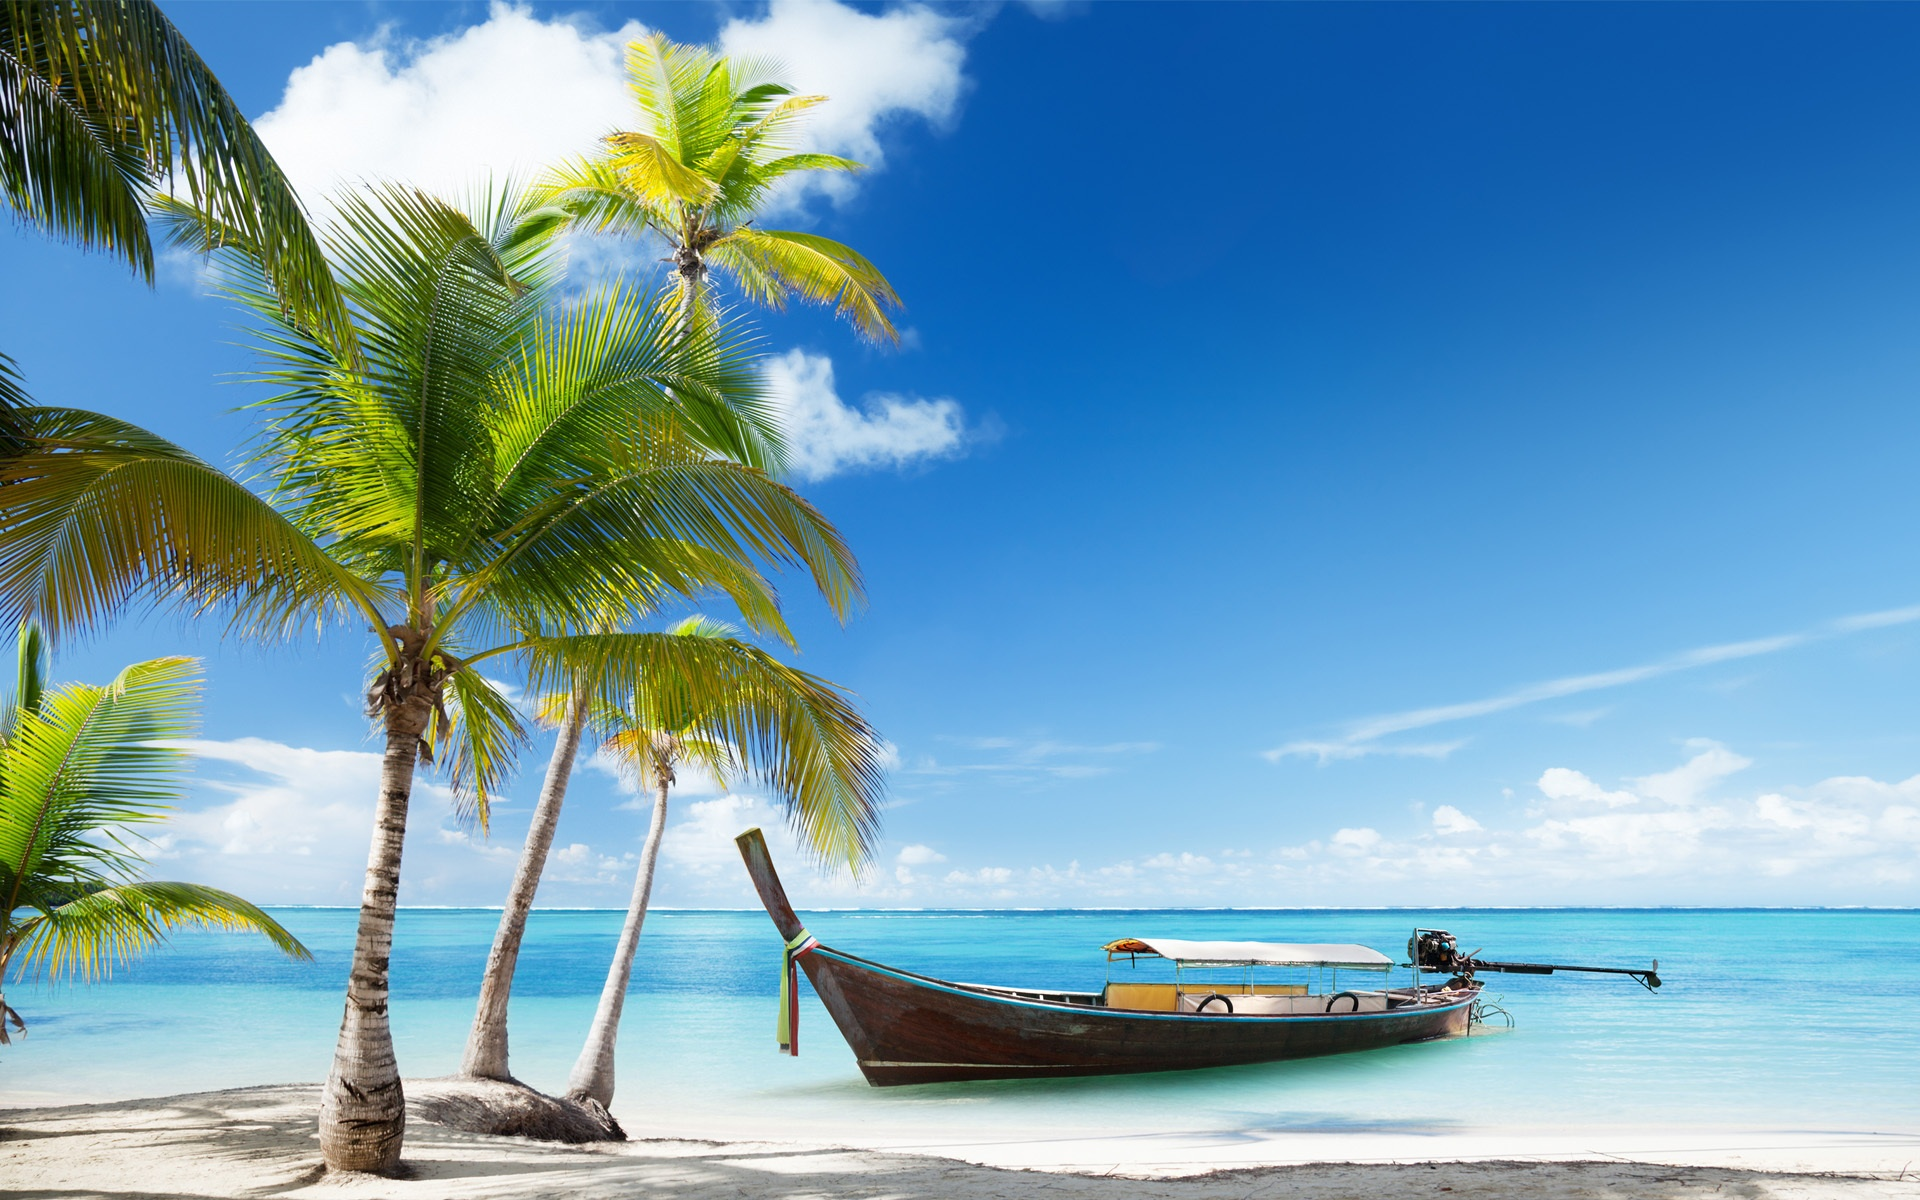 Tropical Beaches With Palm Trees Palm Tree Tropical Island